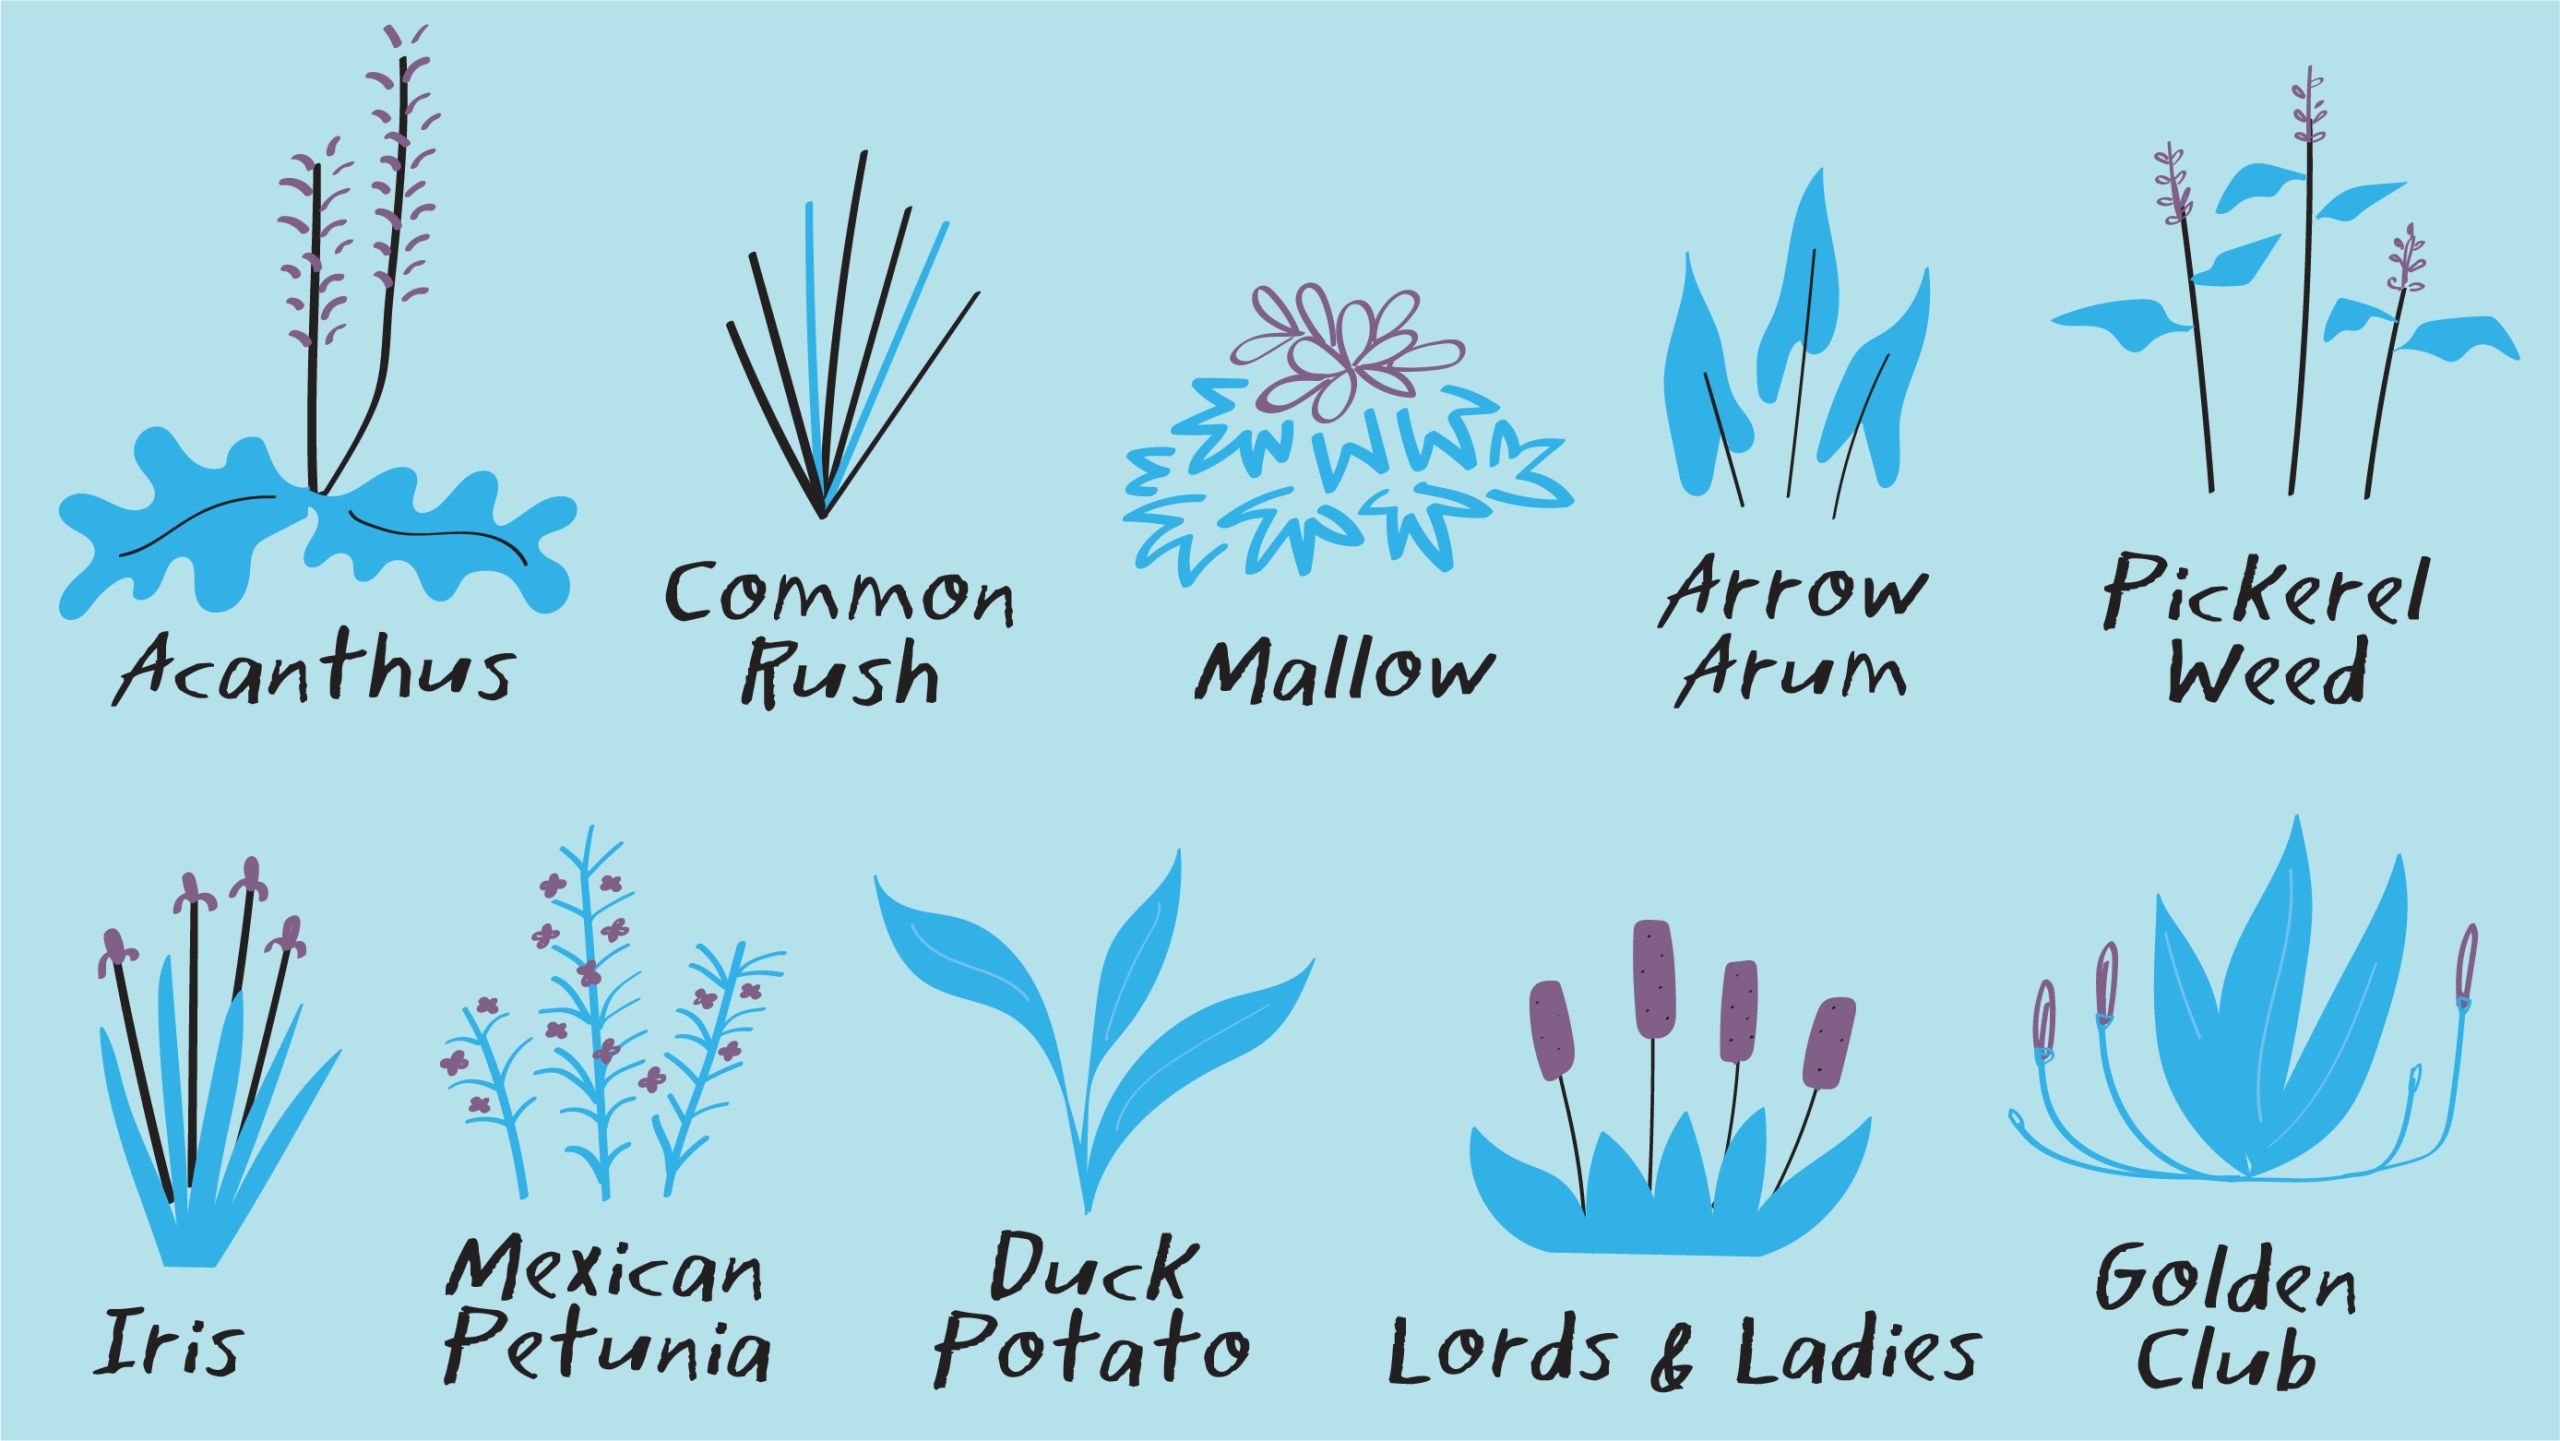 Illustration of the plants that grow in Emory's WaterHub wetlands. They include: acanthus, common rush, mallow, arrow arum, pickerel weed, iris, Mexican petunia, duck potato, lords and ladies and golden club.